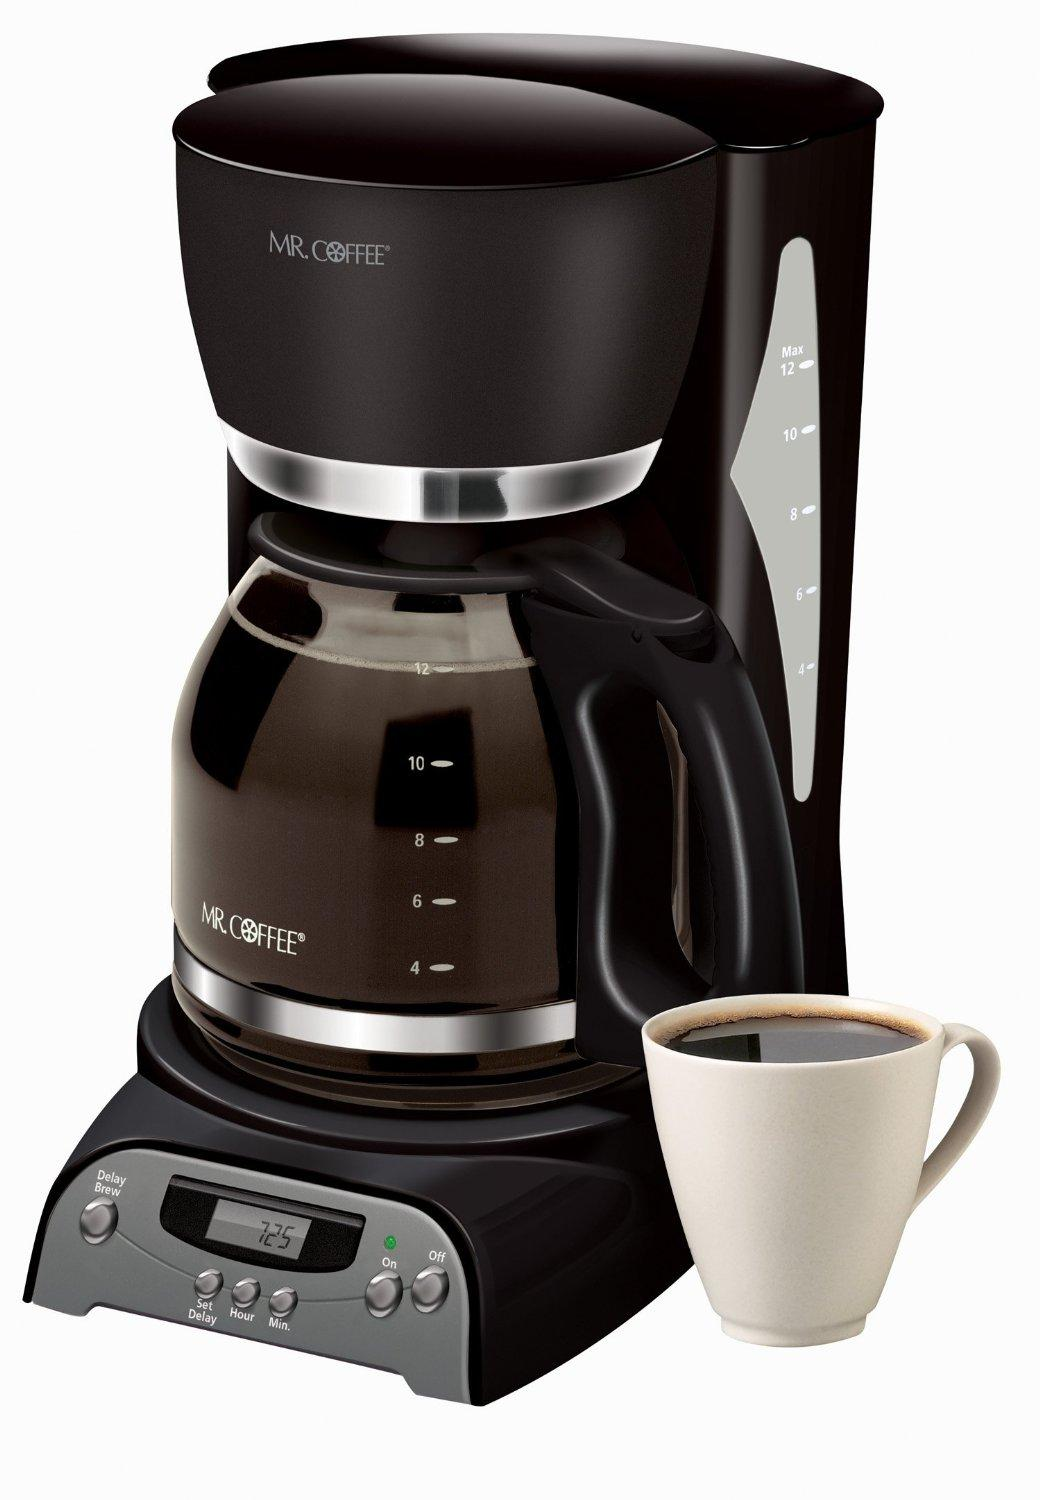 (Discounted) Mr Coffee Small Appliances